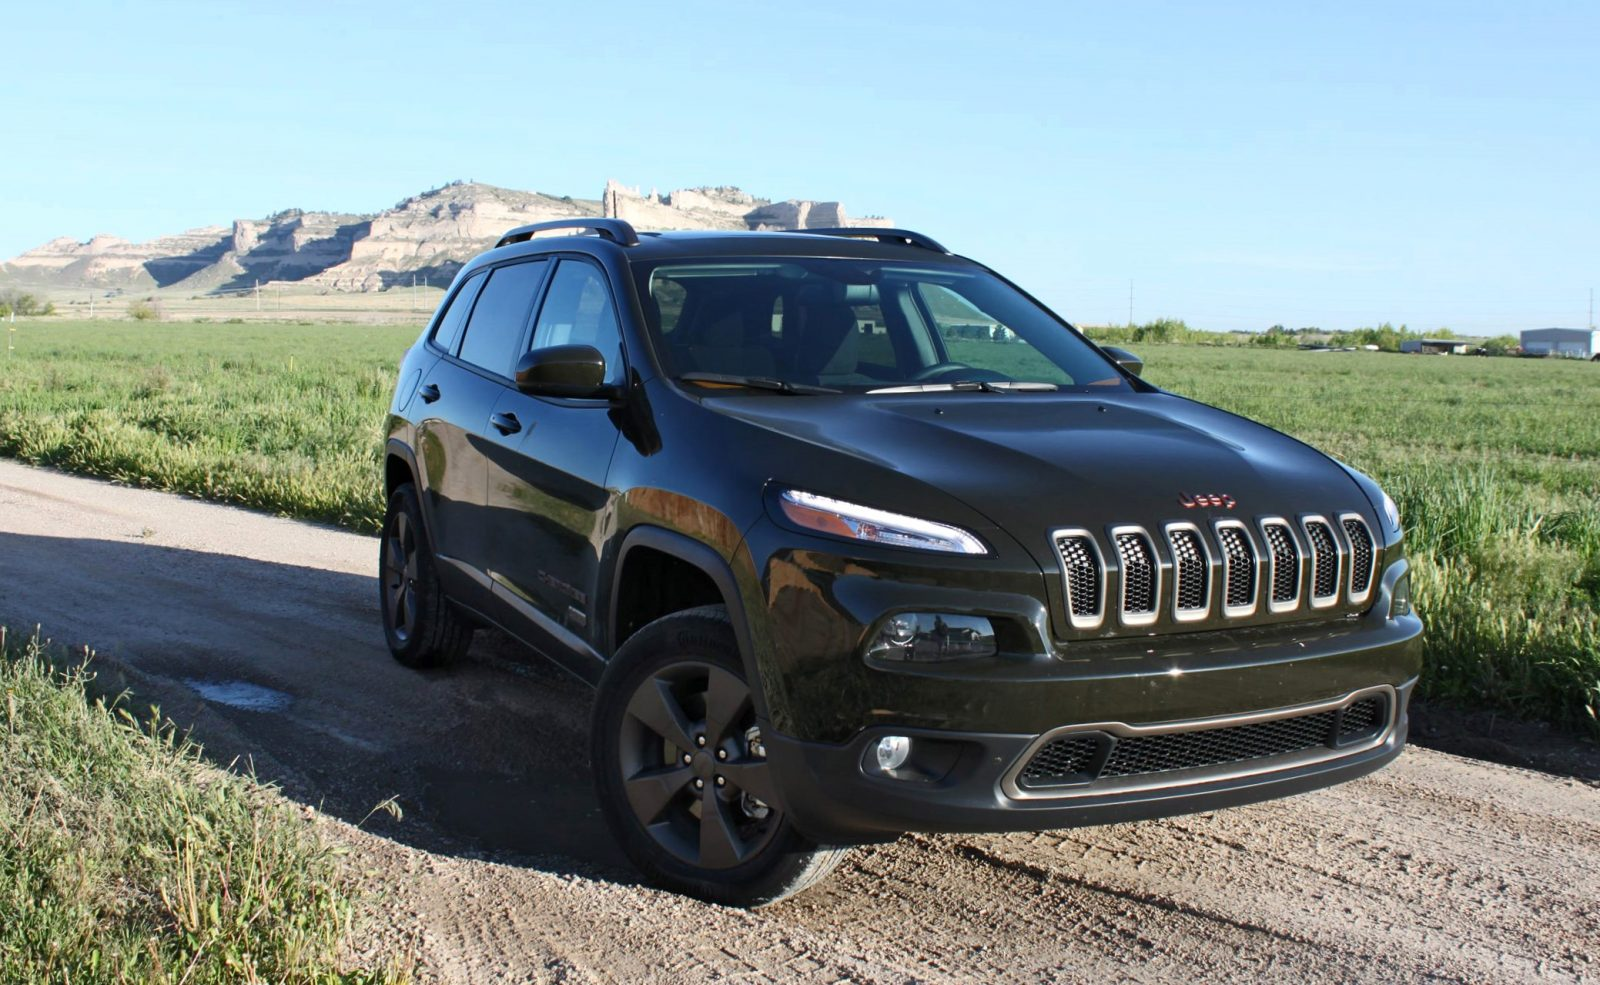 2016 jeep cherokee latitude 75th anniversary edition review by tim esterdahl. Black Bedroom Furniture Sets. Home Design Ideas